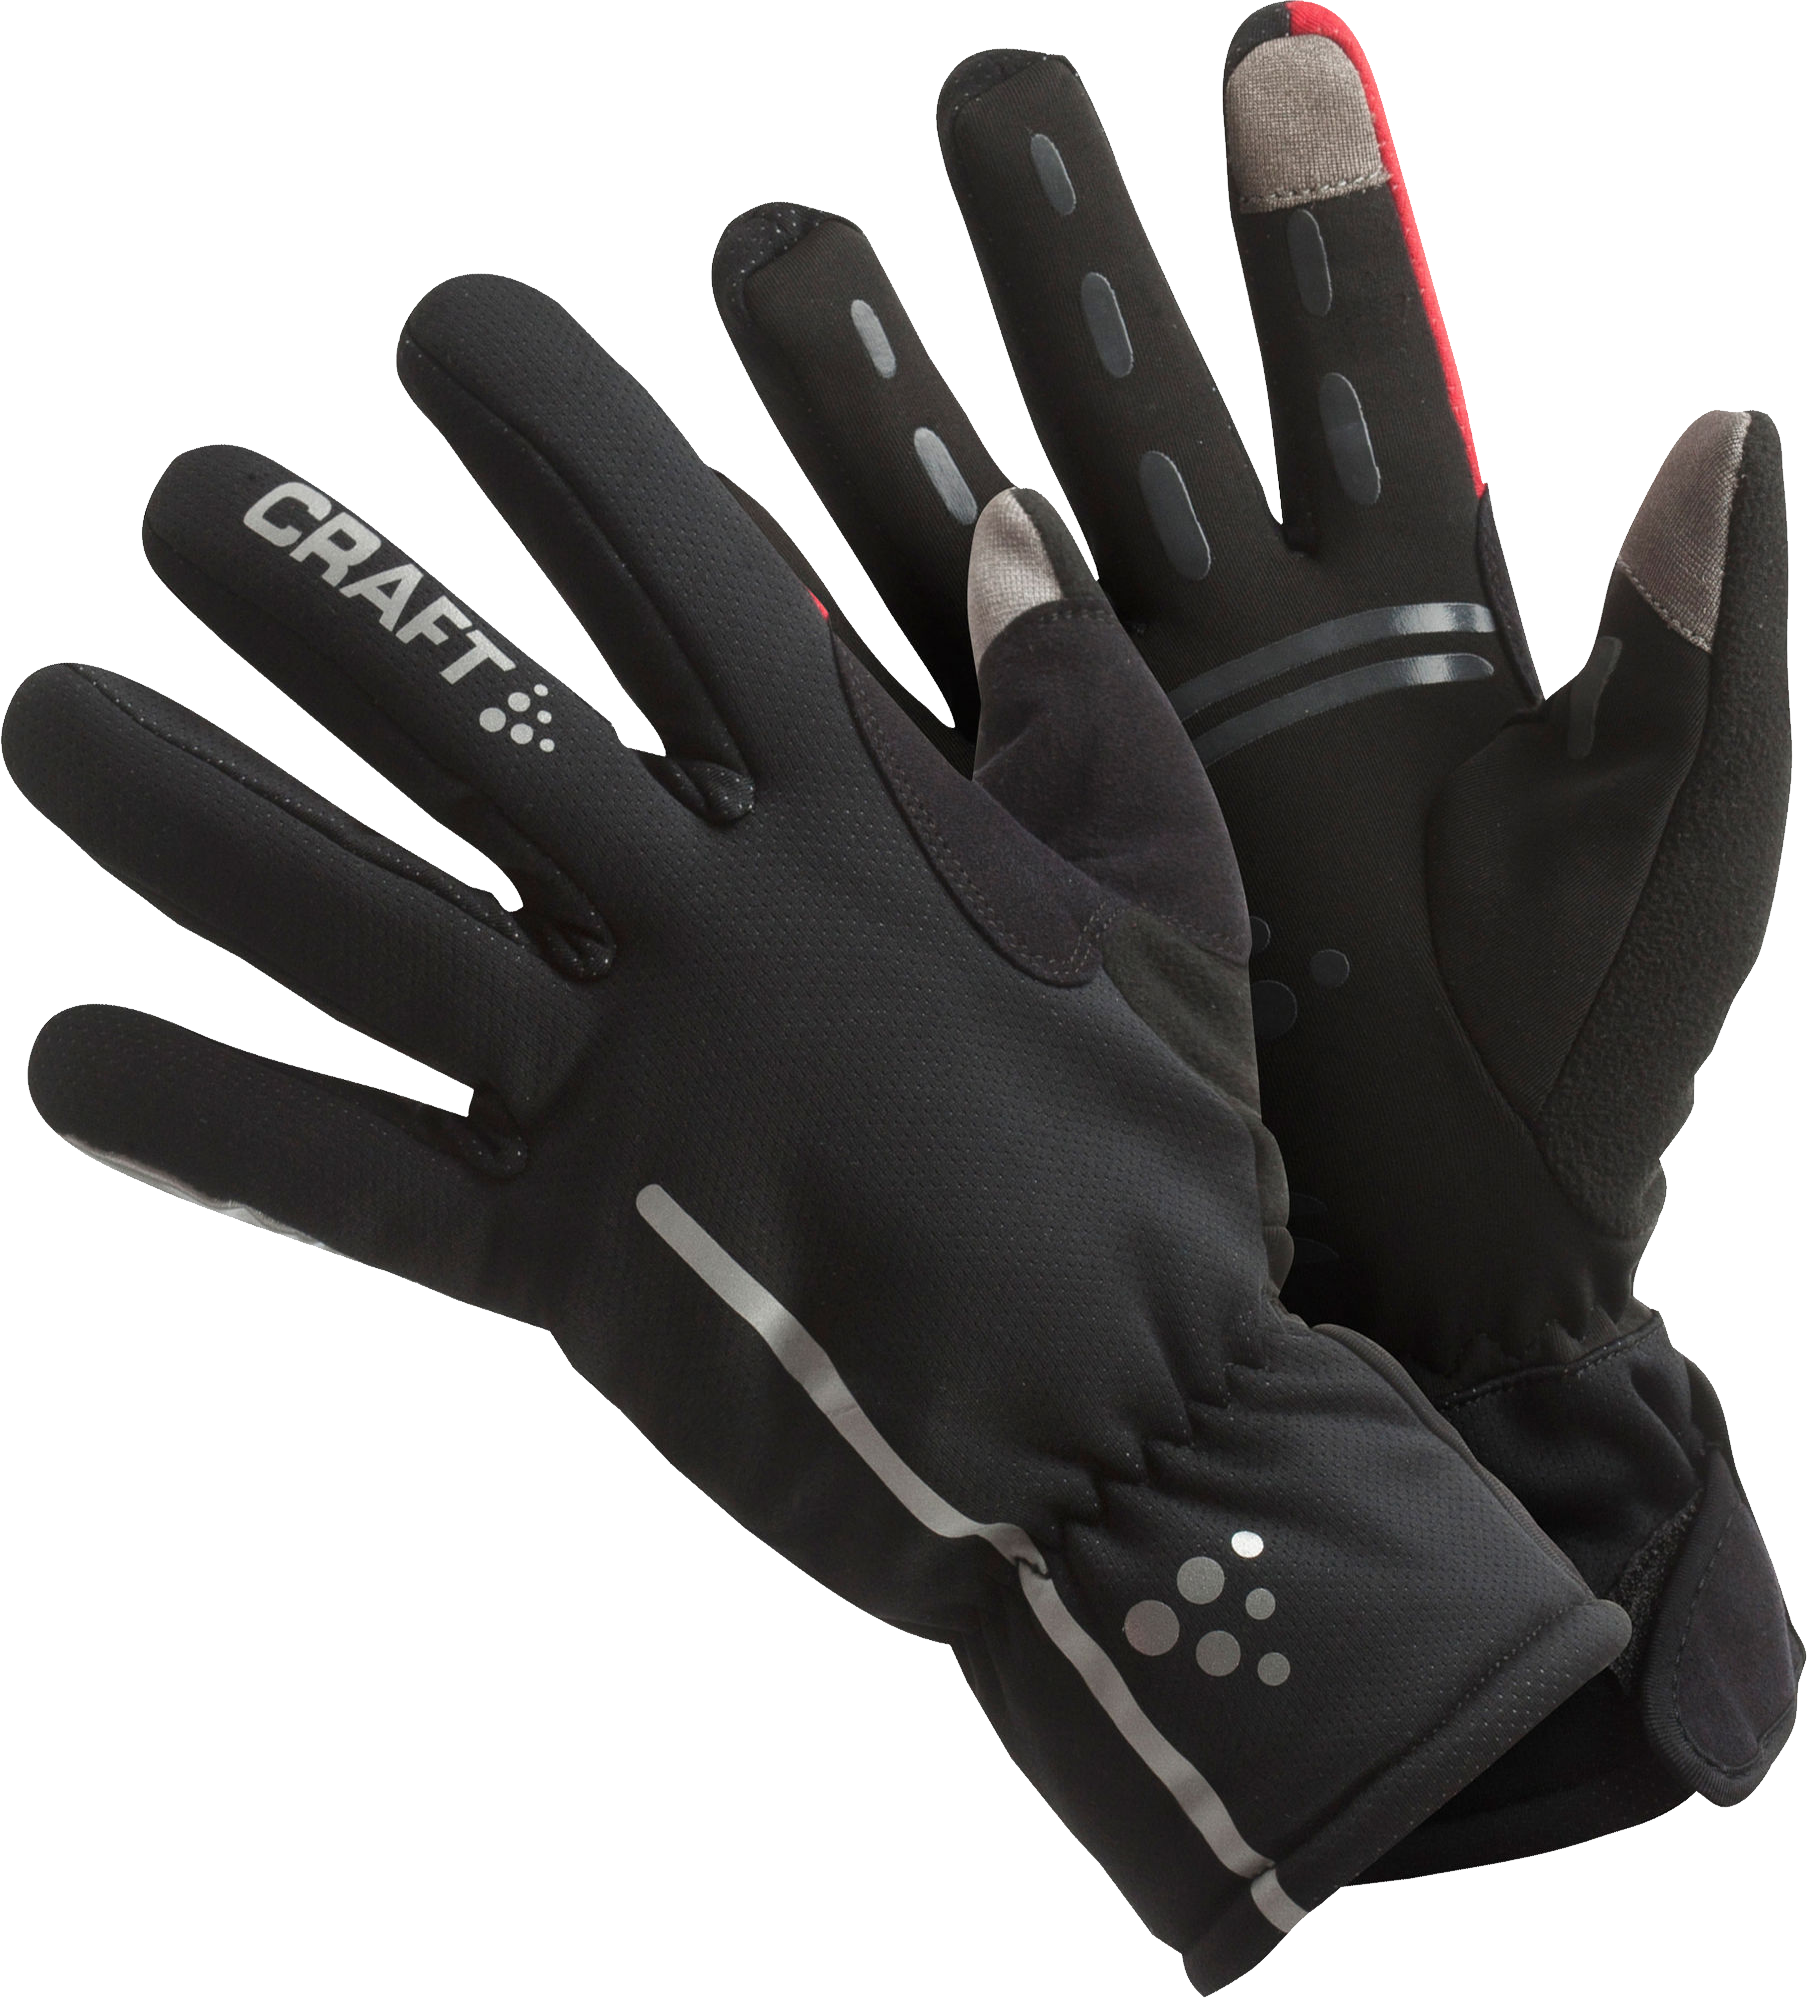 Gloves png images free. Mittens clipart warm glove